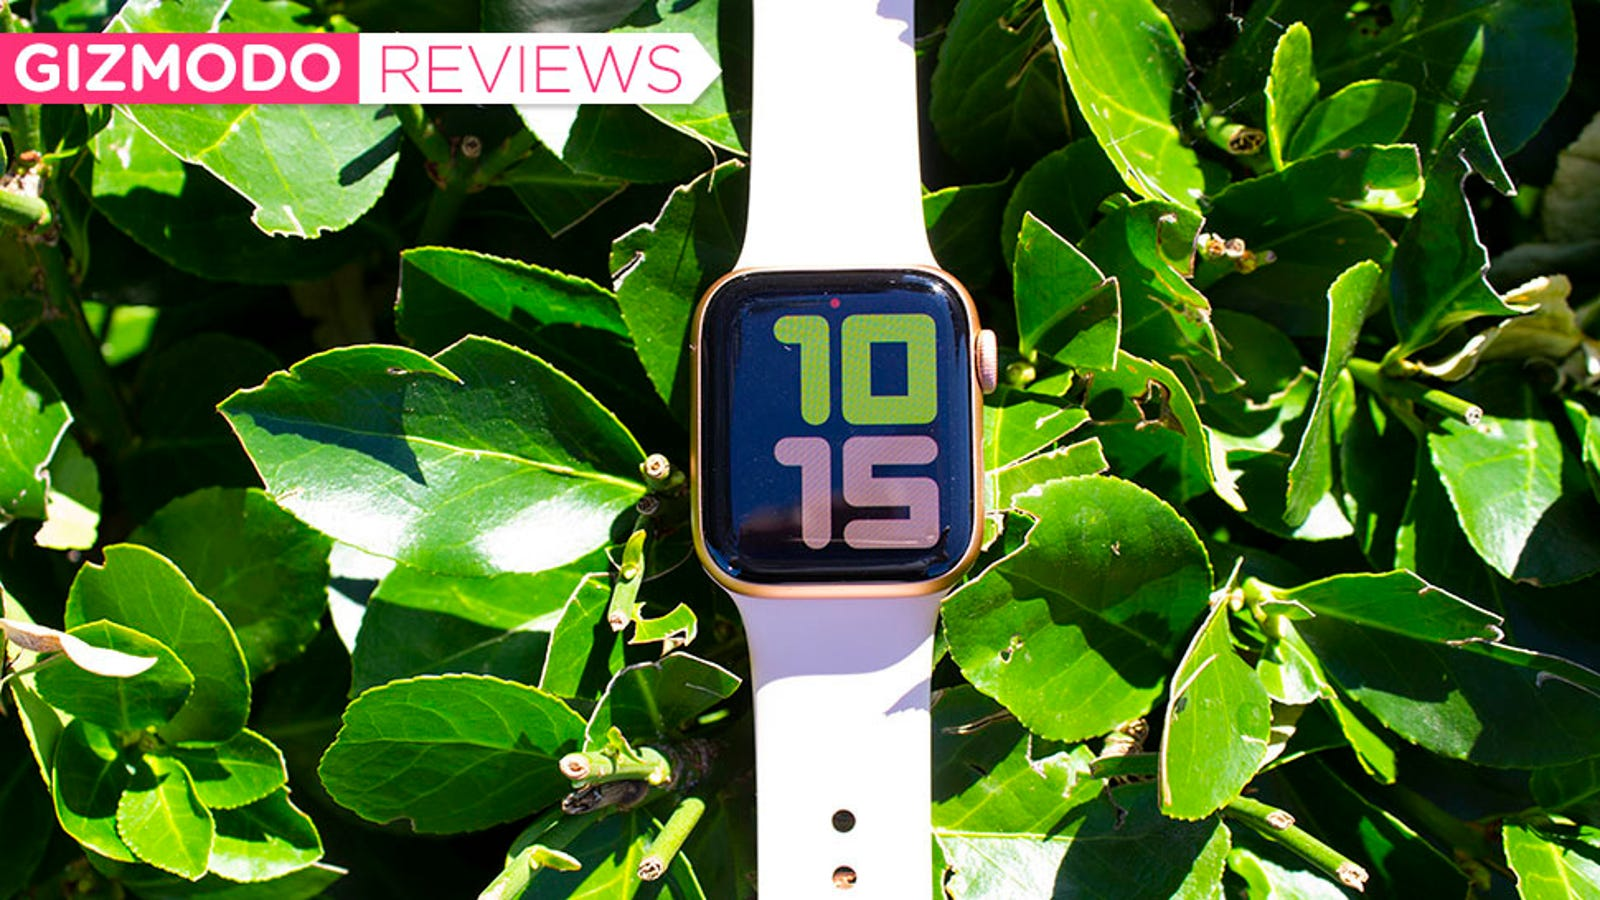 The New Apple Watch Is The Best One Yet—Thanks to a Major OS Upgrade